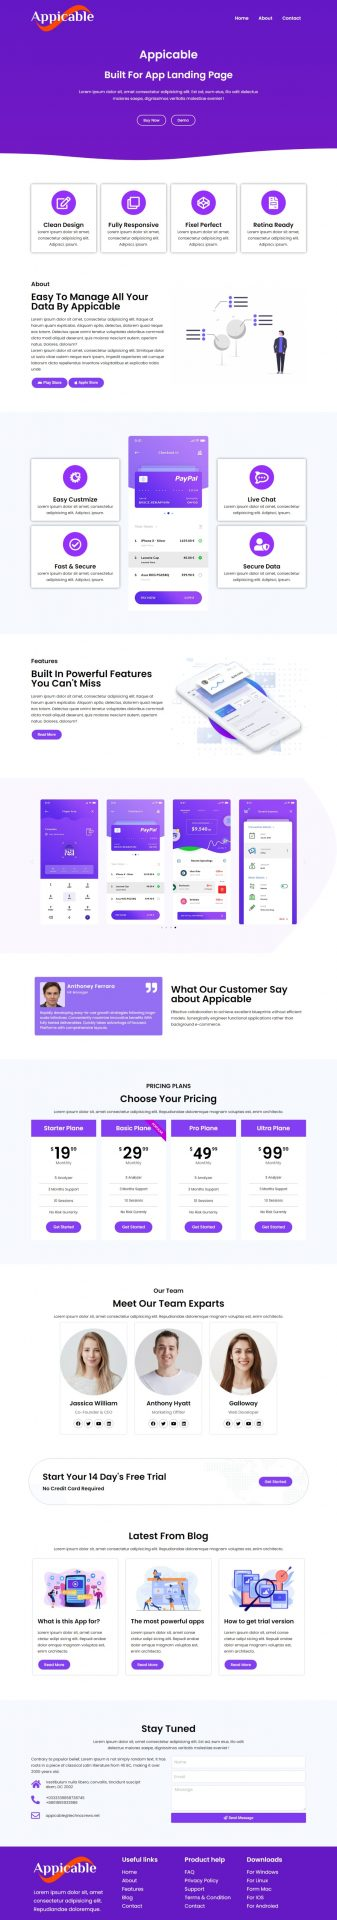 appicable-featured